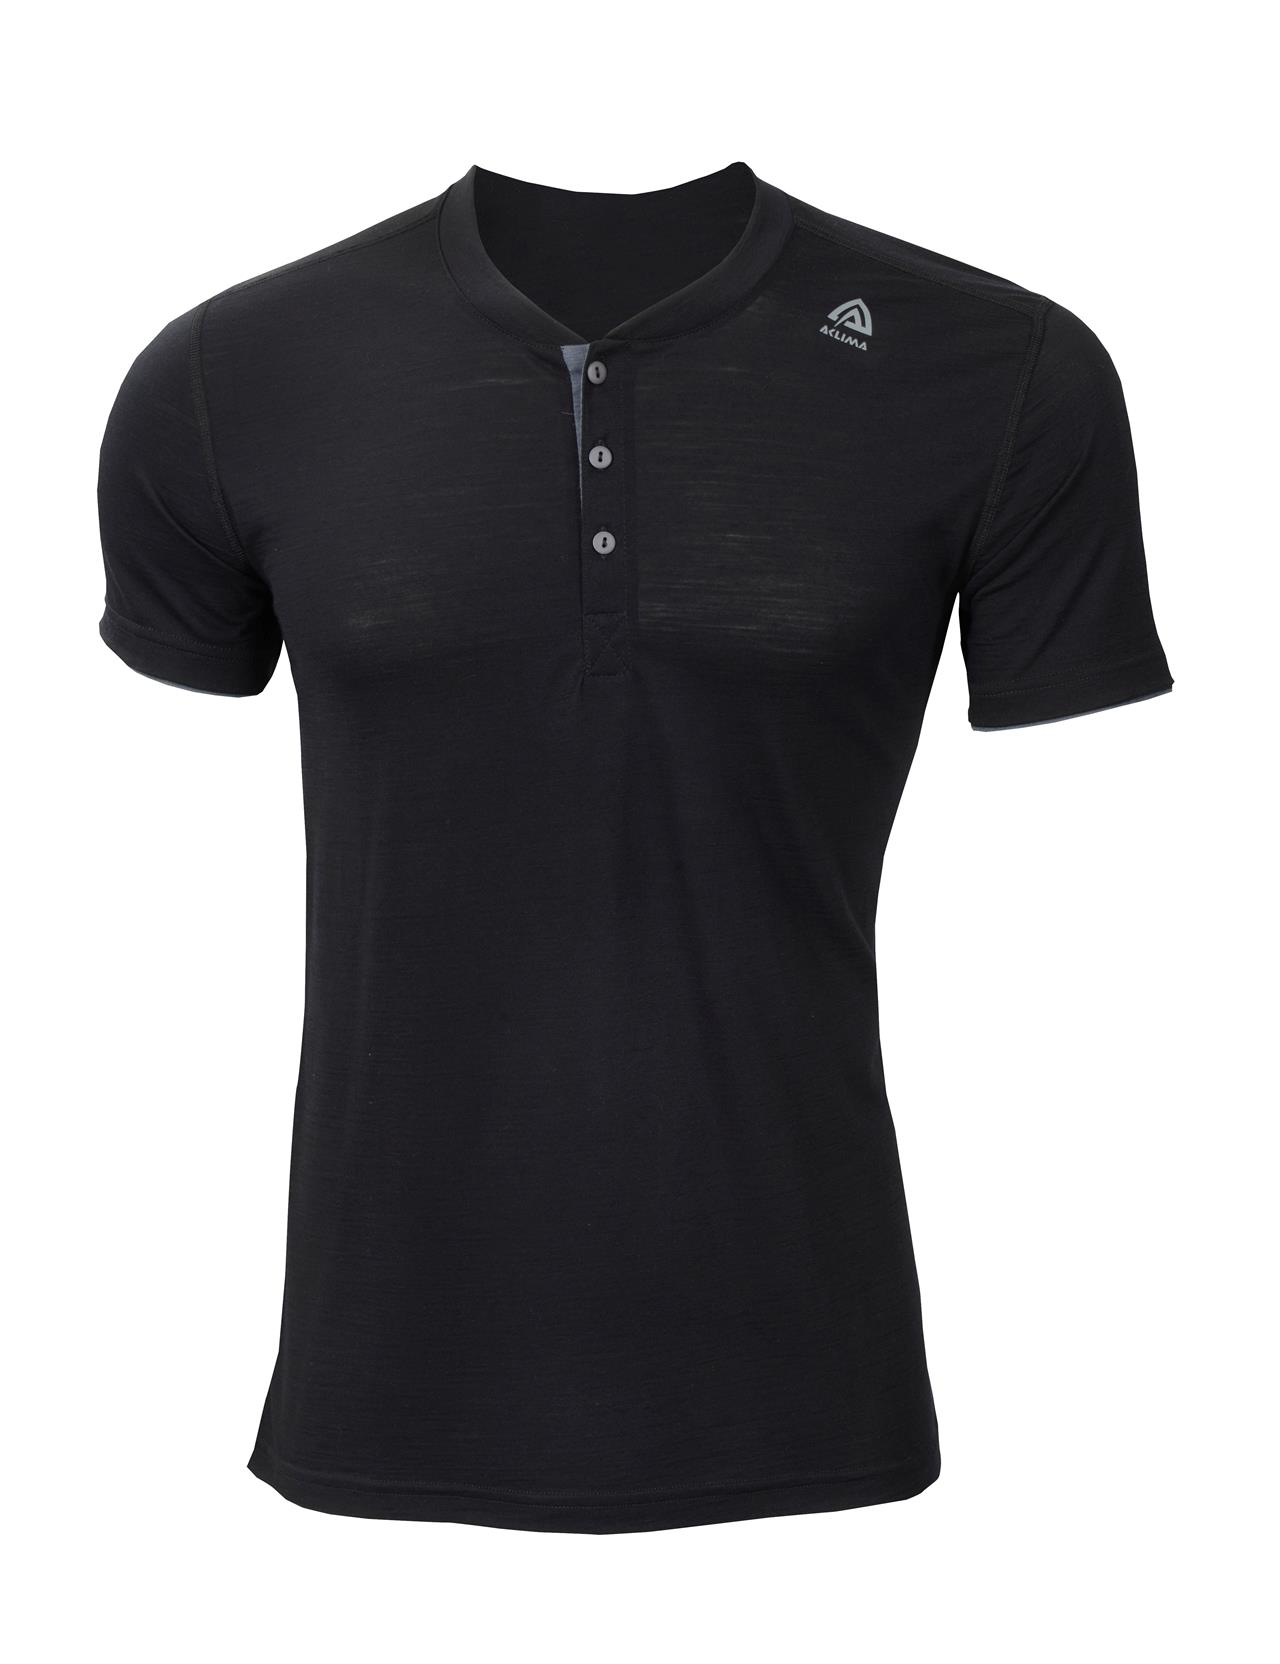 Aclima LightWool Henley shirt